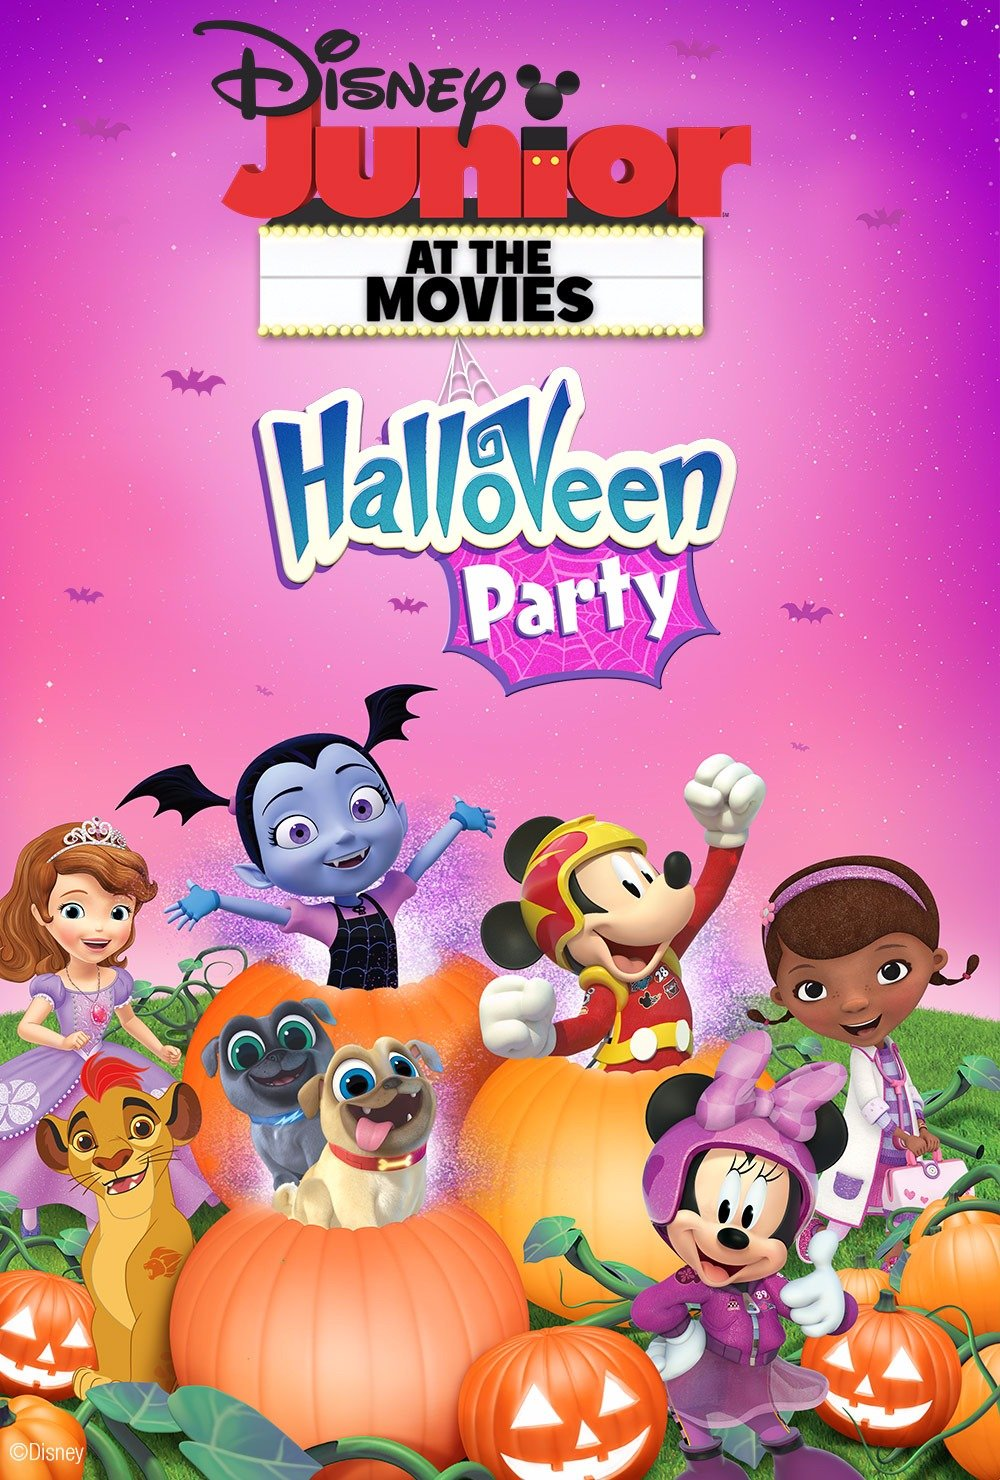 Event Review: Disney Junior at the Movies - HalloVeen Party!